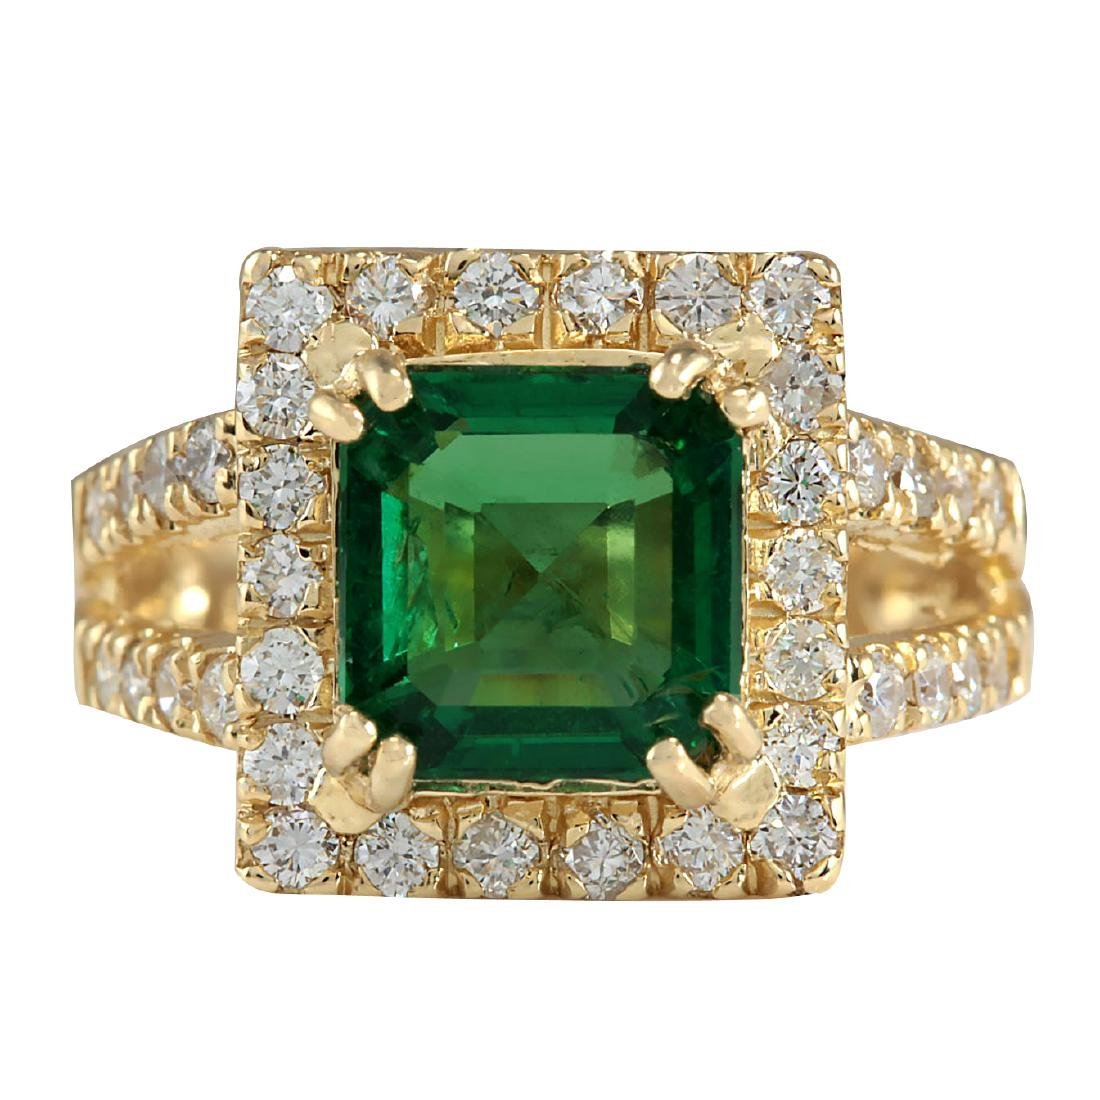 3.37CTW Natural Emerald And Diamond Ring In 18K Yellow